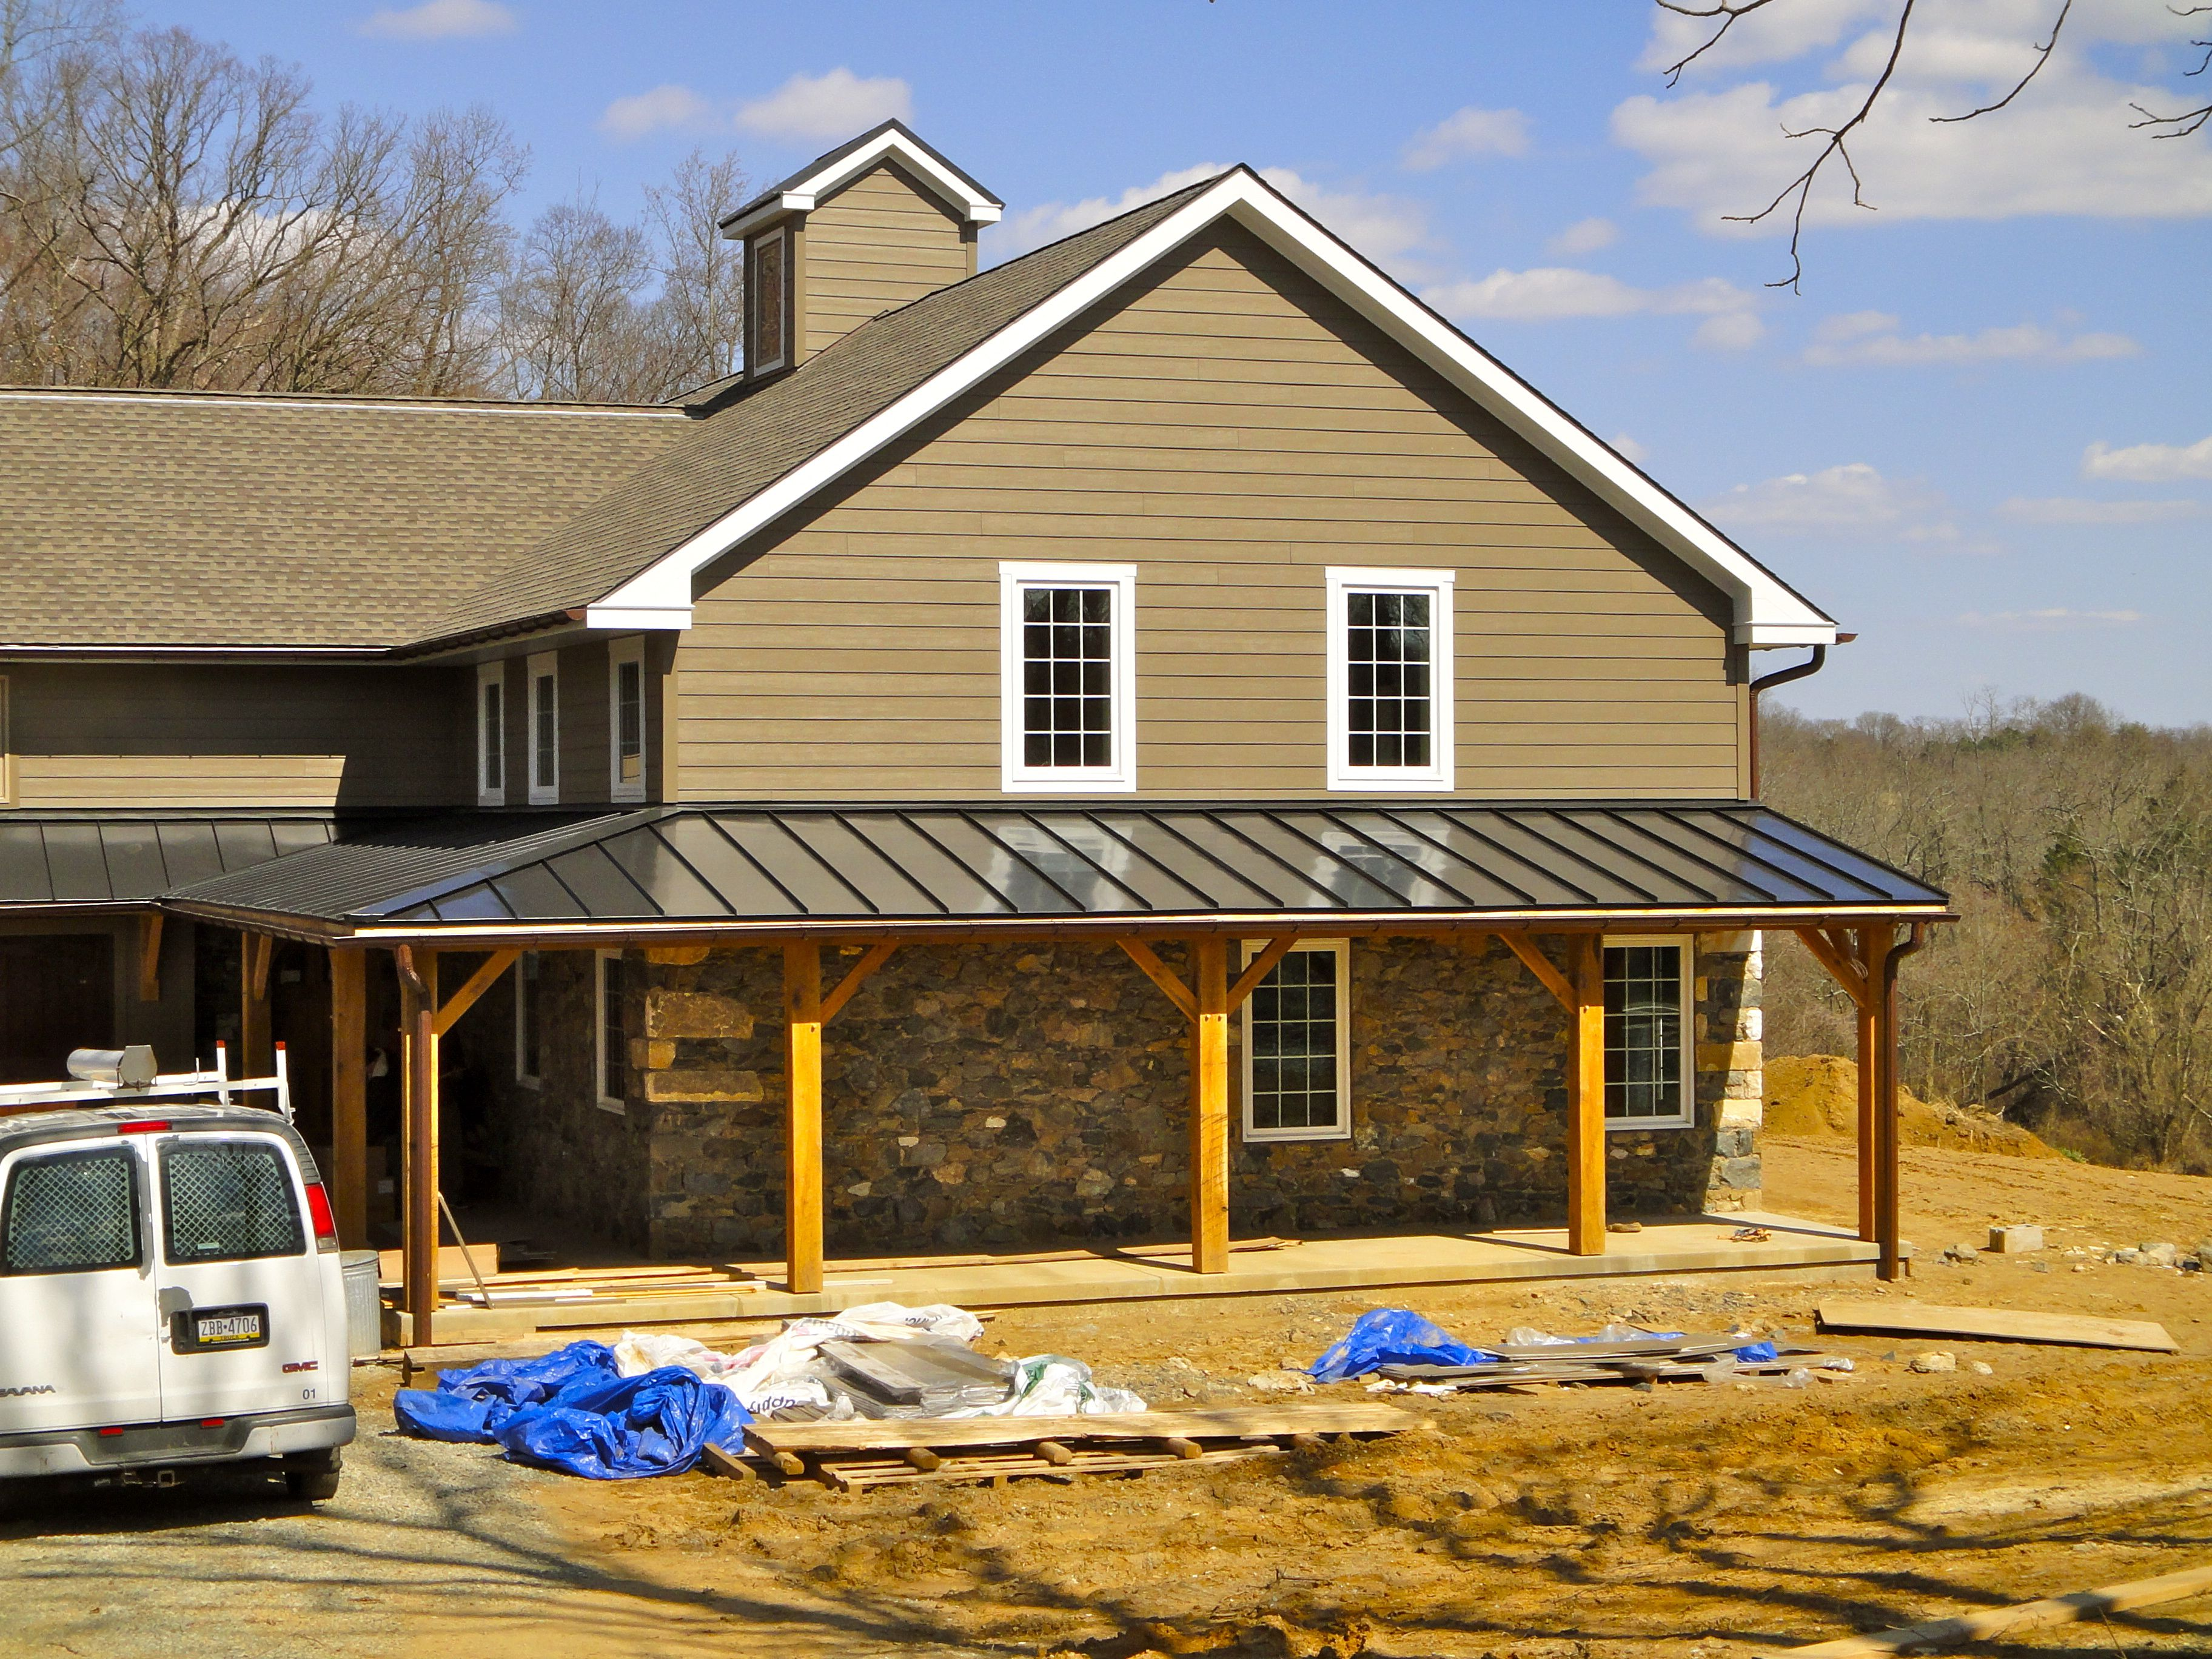 metal roof is shiny? houses with hardie board siding and